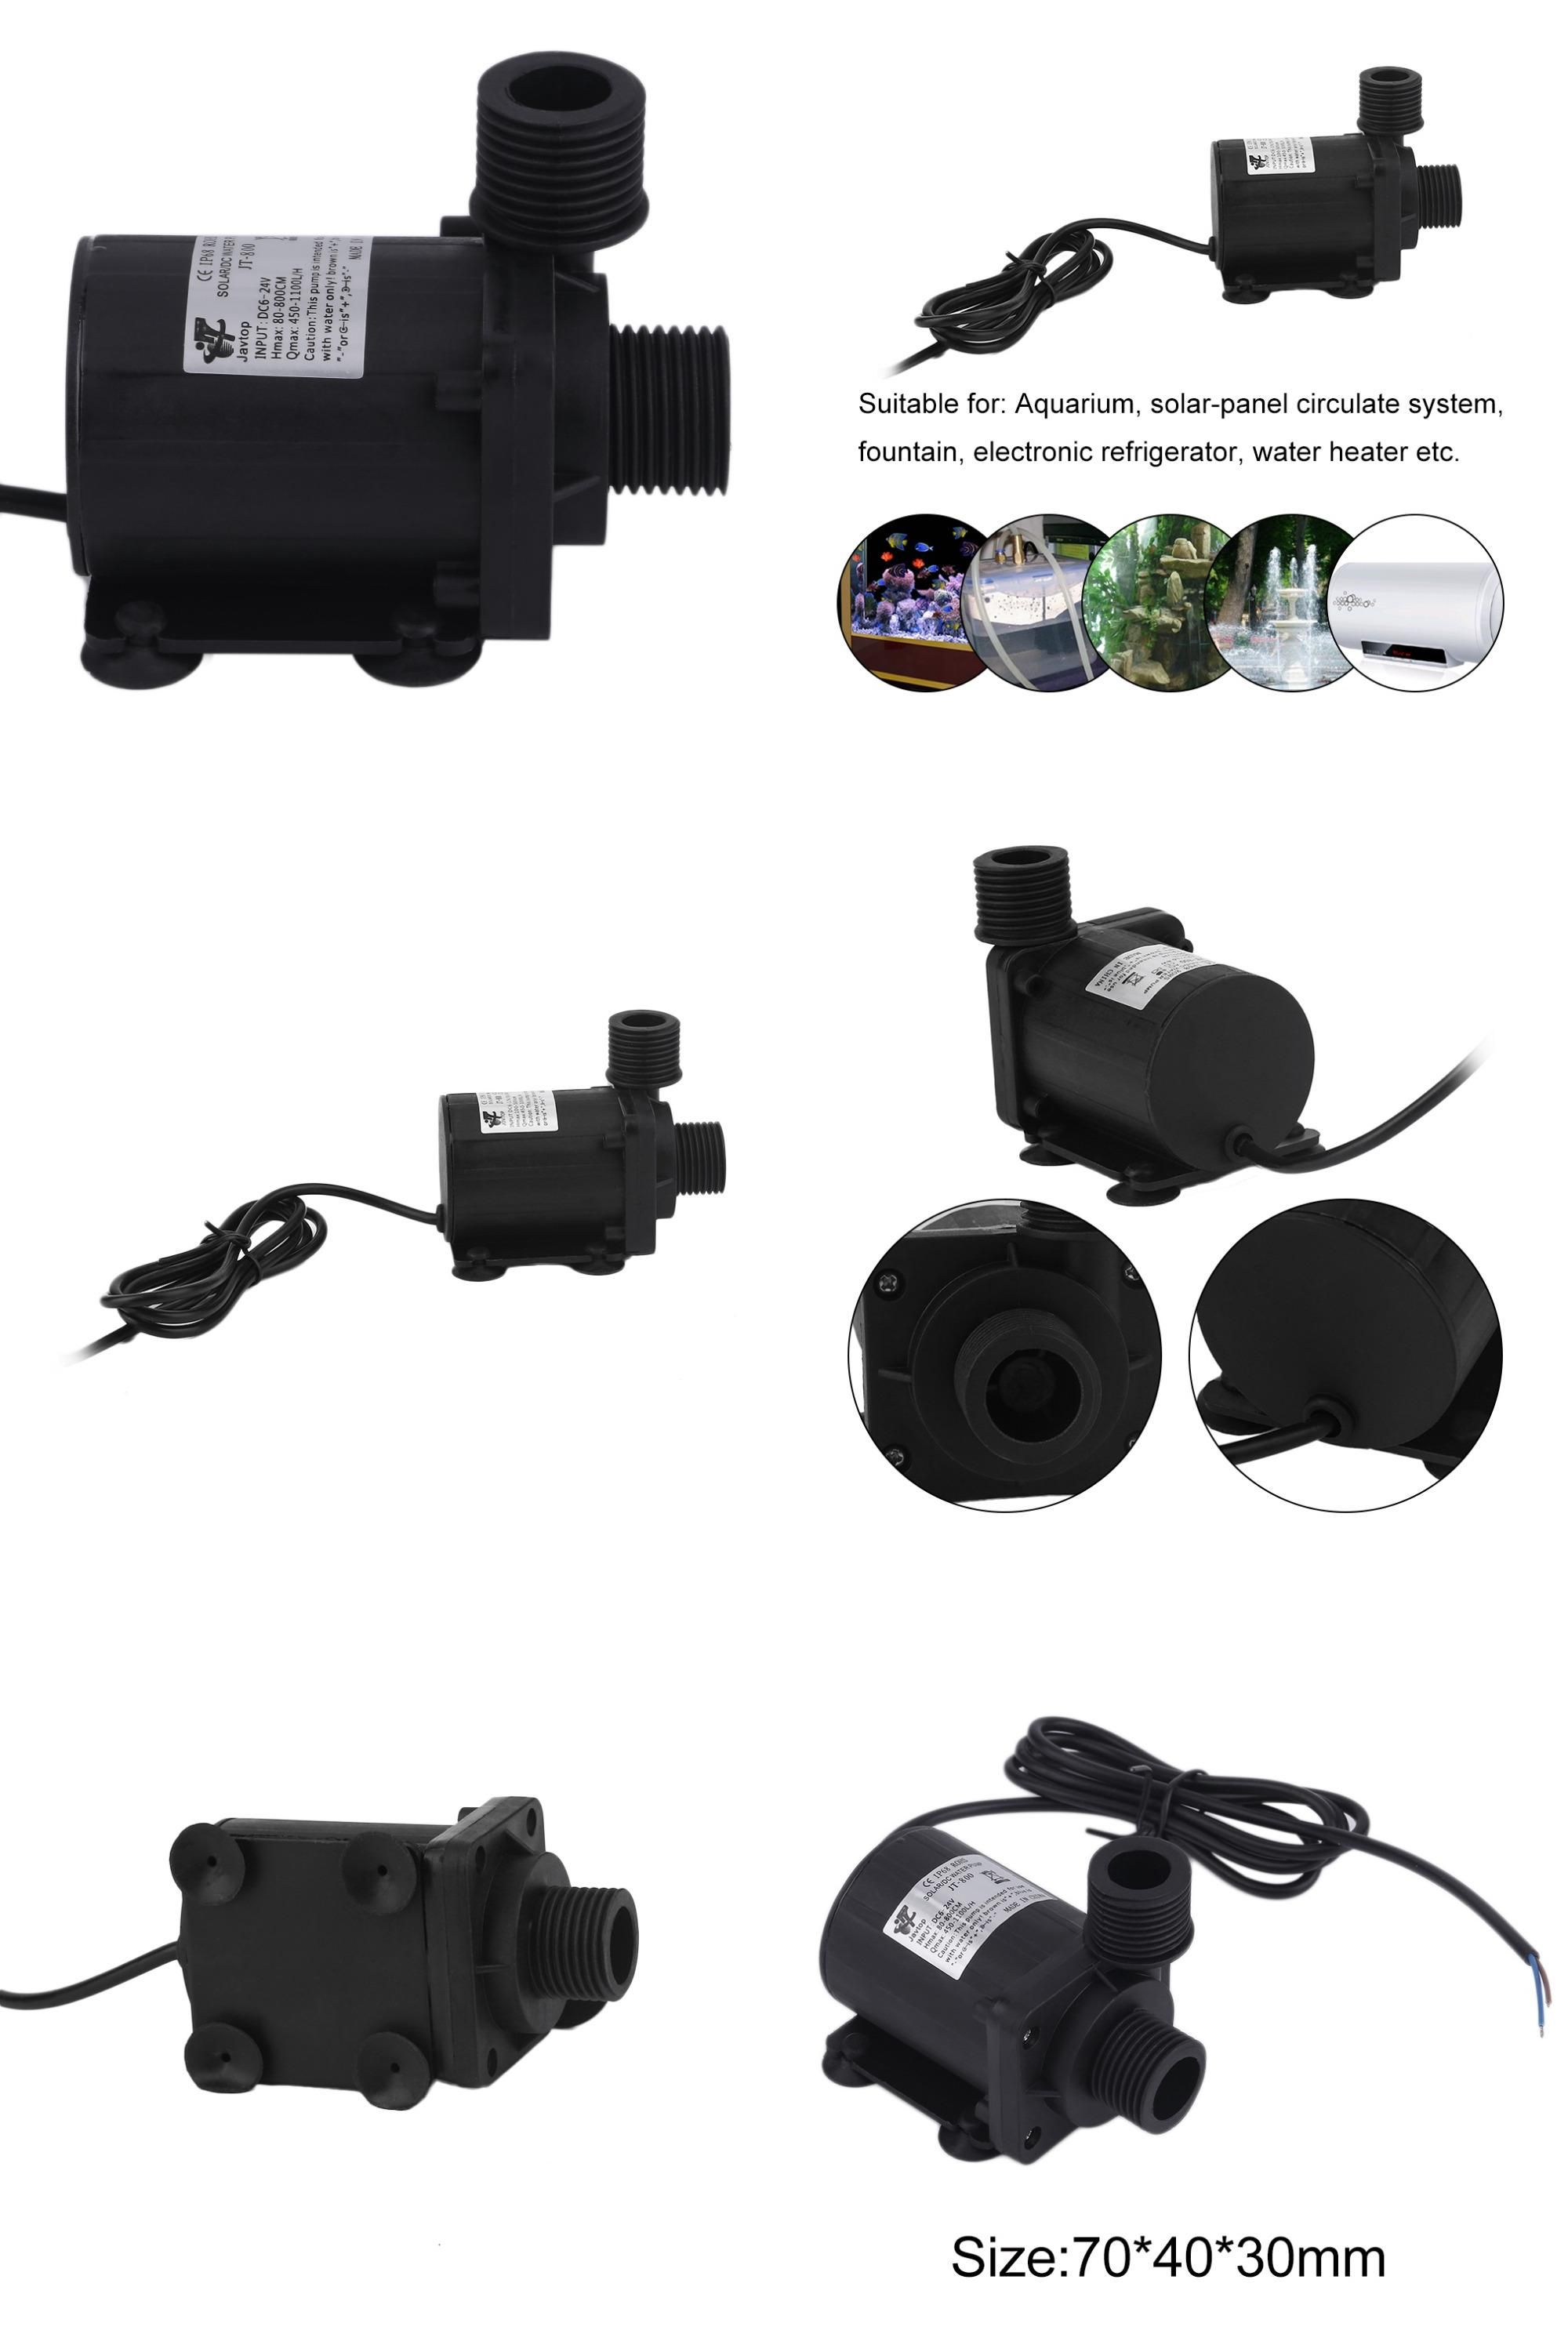 Visit To Buy Dc 24v 600l H Brushless Motor Magnetic Centrifugal Water Pump Aquarium Solar Panel Circulate System Water Heater Founta Solar Panels Water Heater